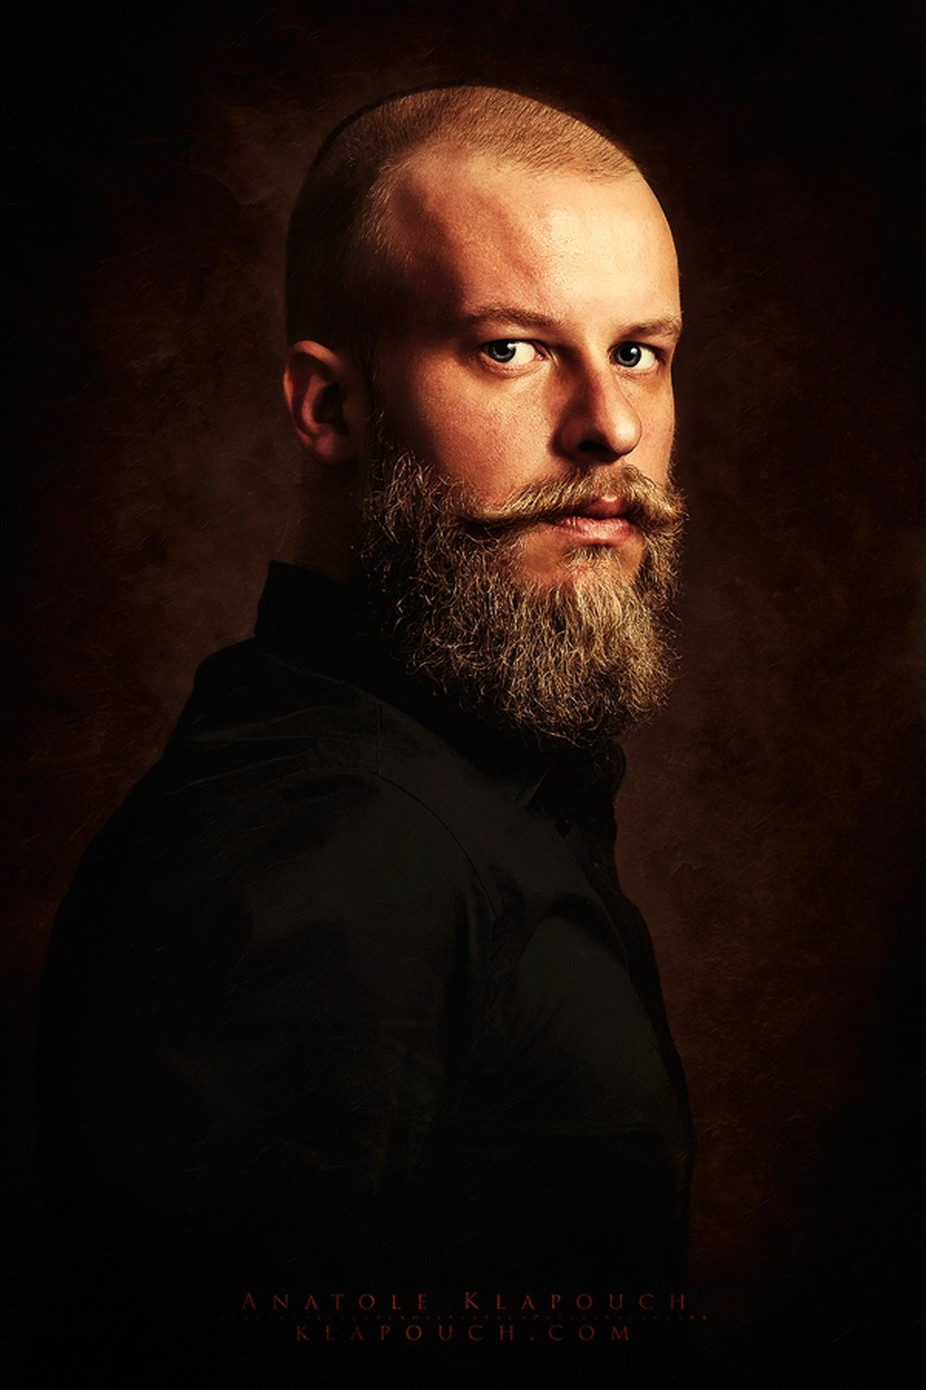 Self-portrait by klapouch - Beards and Mustaches Photo Contest